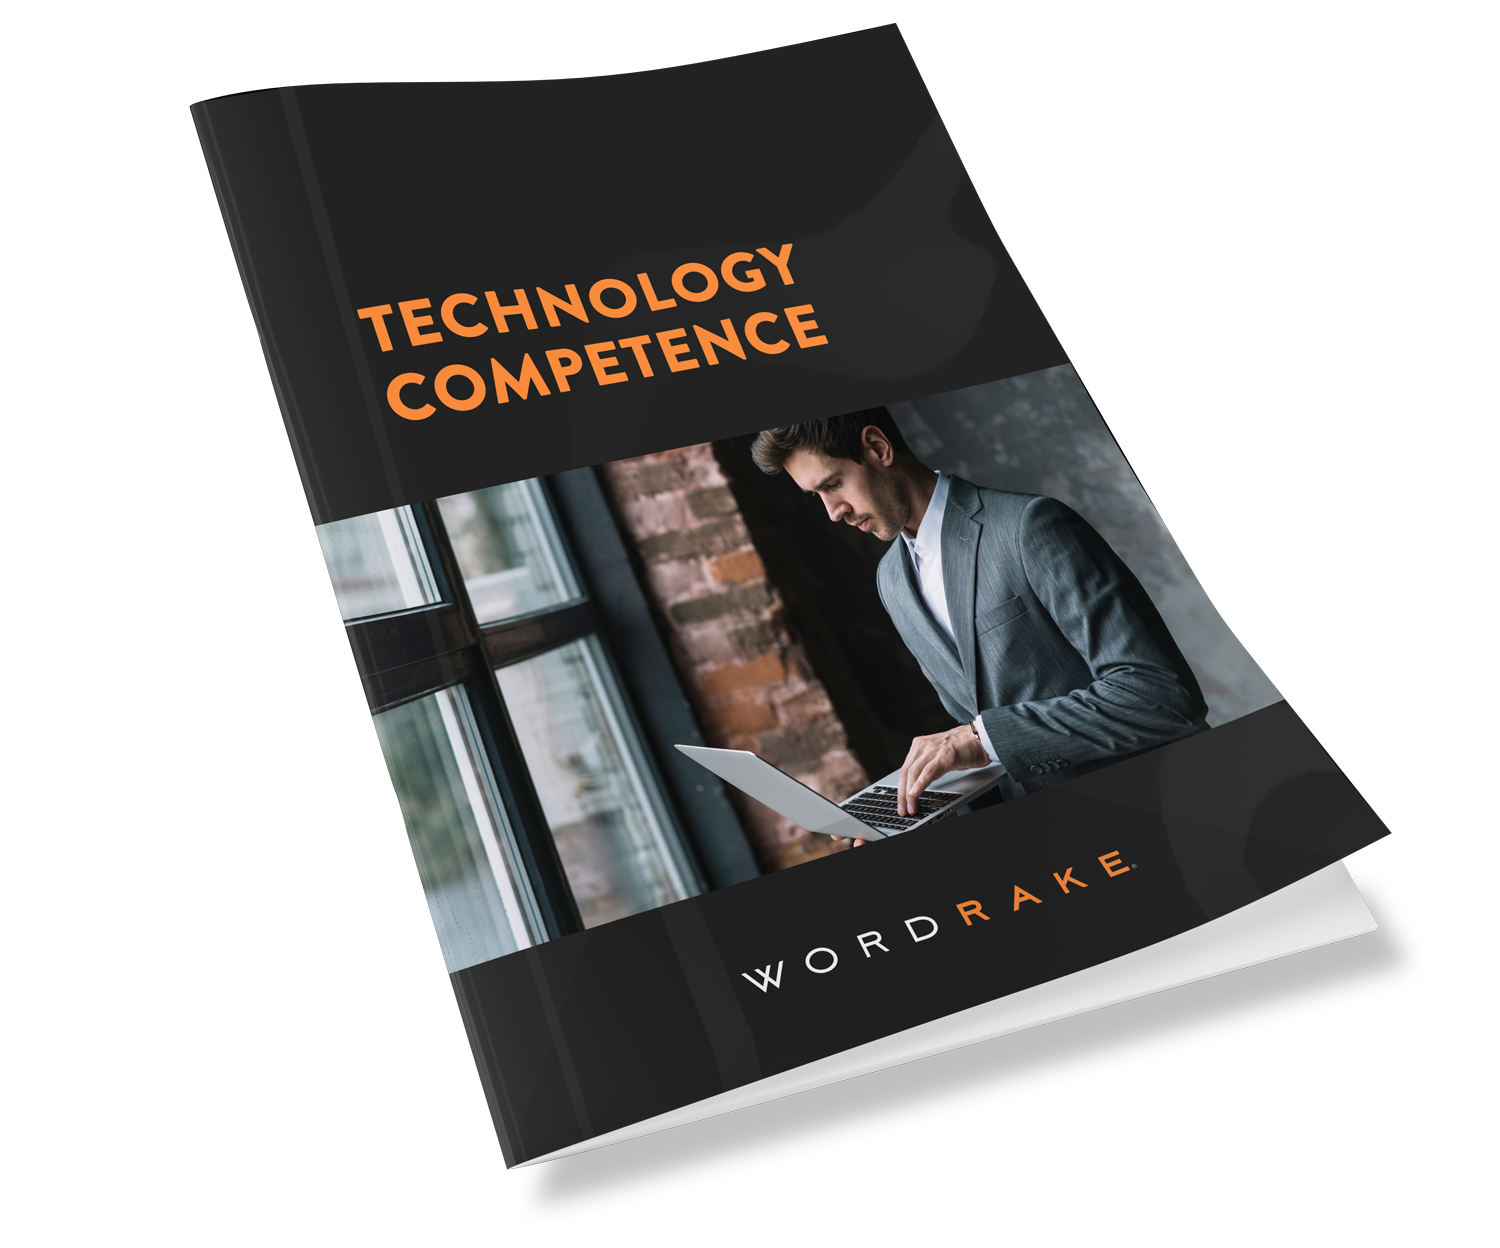 Tech Competence White Paper Image